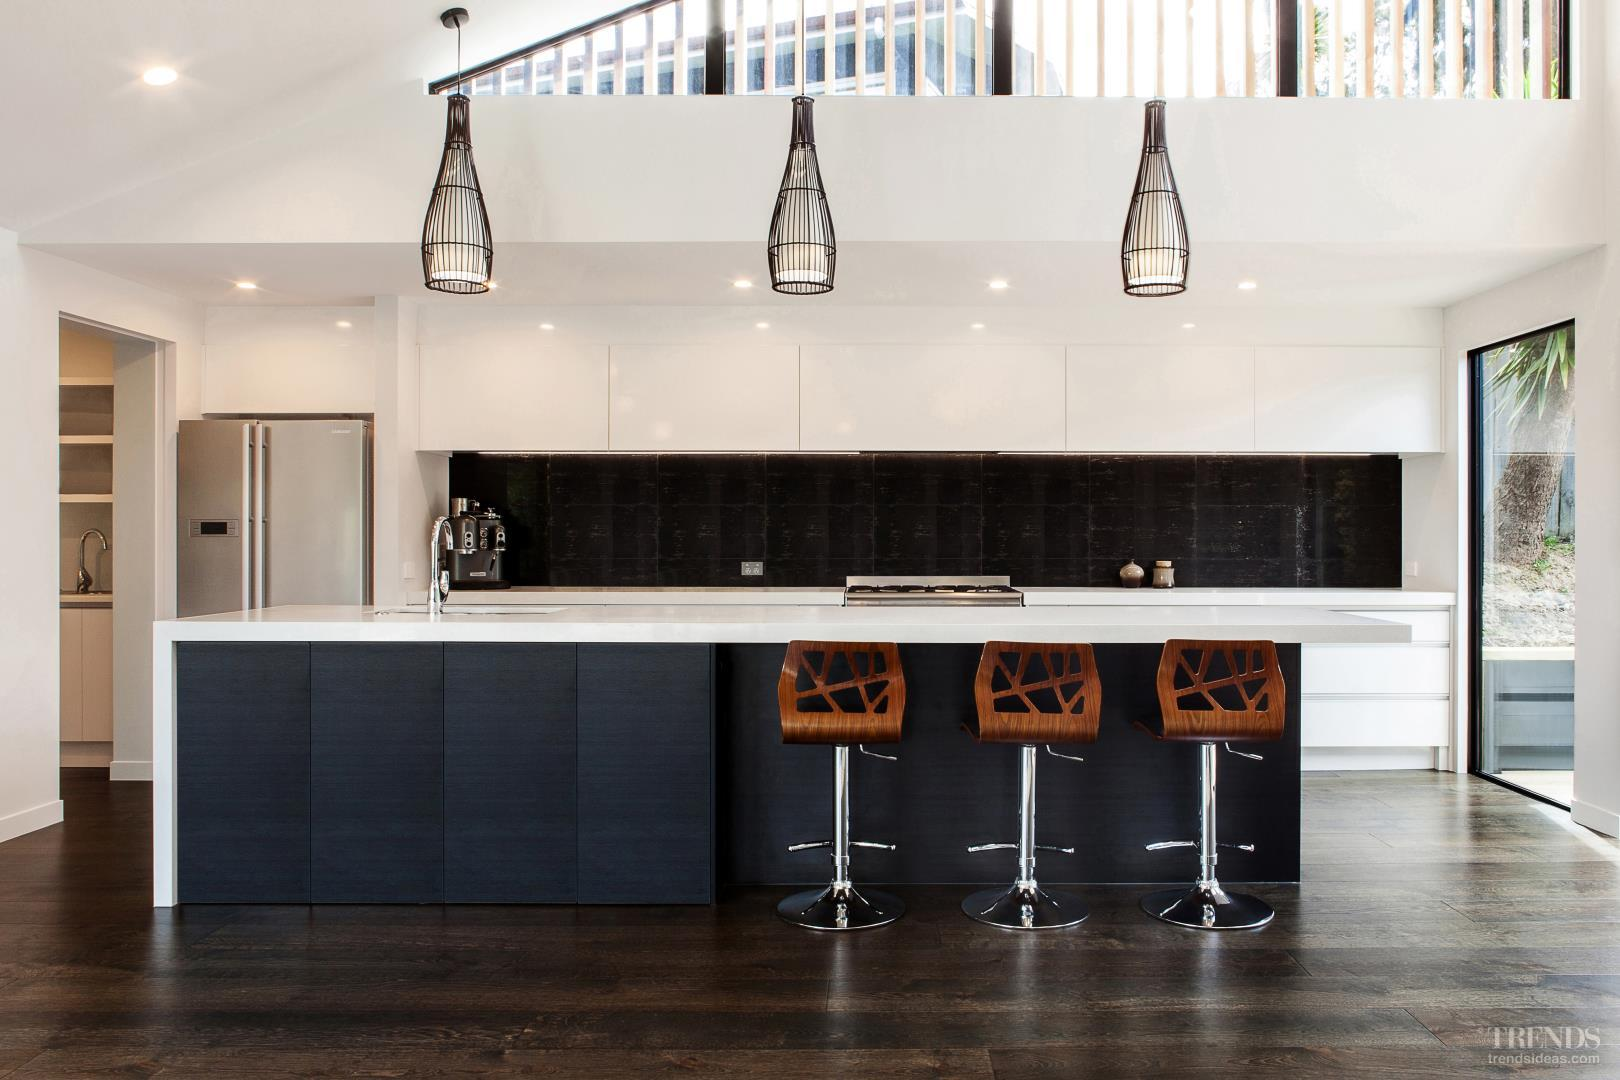 Custom Kitchens And Bathrooms A Speciality Of Apollo Bathroom And Kitchen In Auckland